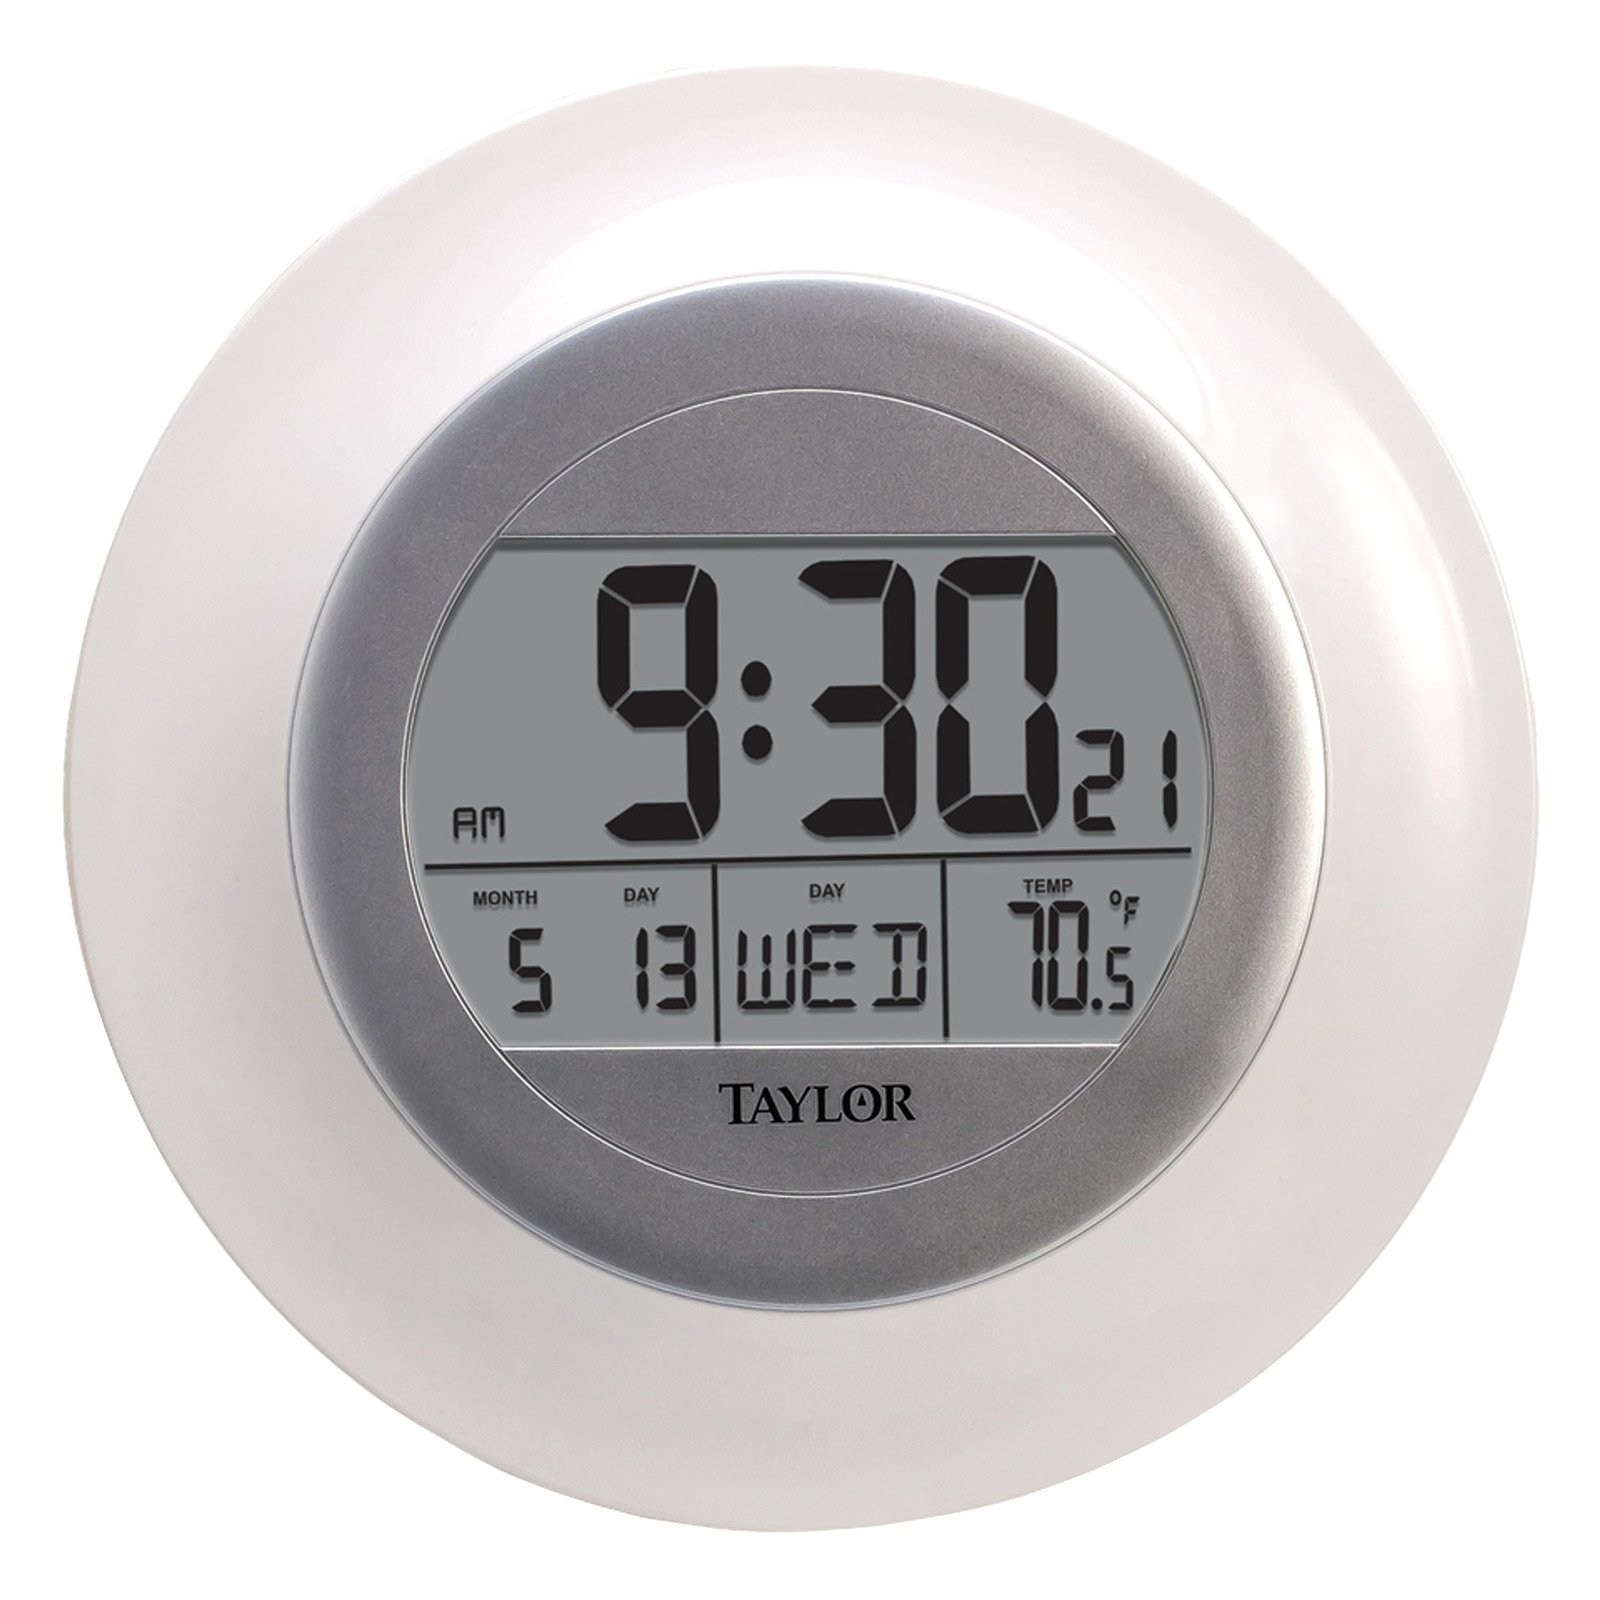 Taylor 1750 Atomic White Wall Clock with Thermometer